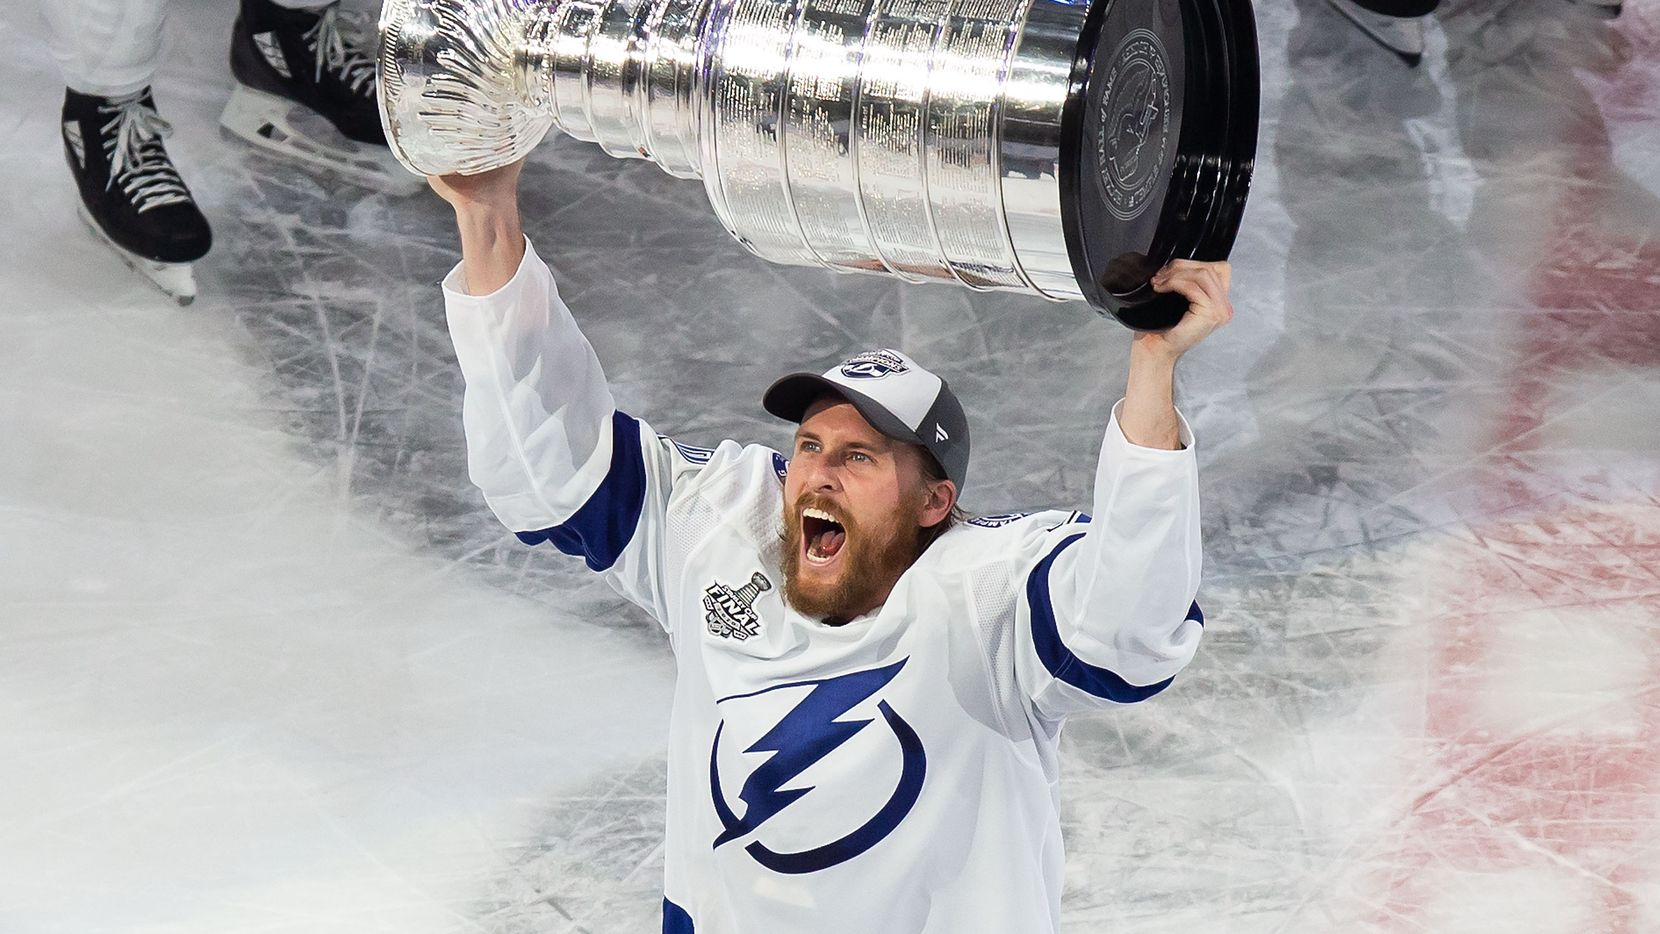 Blake Coleman (20) of the Tampa Bay Lightning hoists the Stanley Cup after defeating the Dallas Stars during Game Six of the Stanley Cup Final at Rogers Place in Edmonton, Alberta, Canada on Monday, September 28, 2020. (Codie McLachlan/Special Contributor)